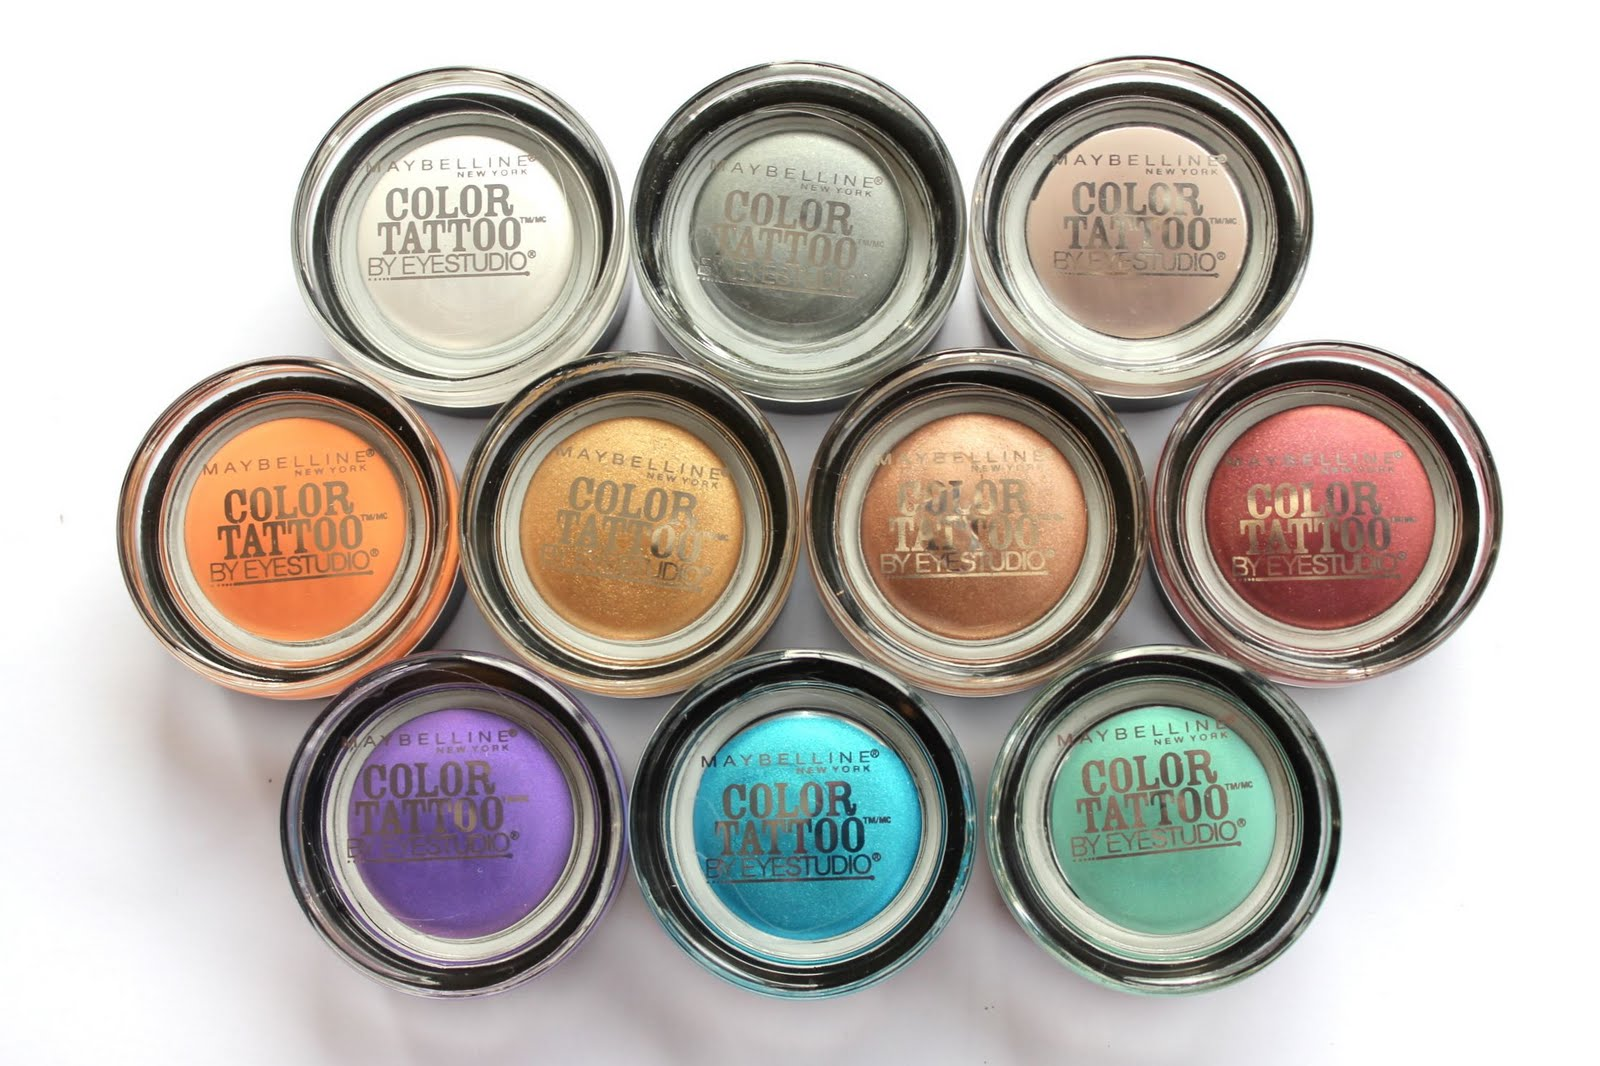 Does Maybelline Color Tattoo Eyeshadow Really Last 24 Ideas And Designs